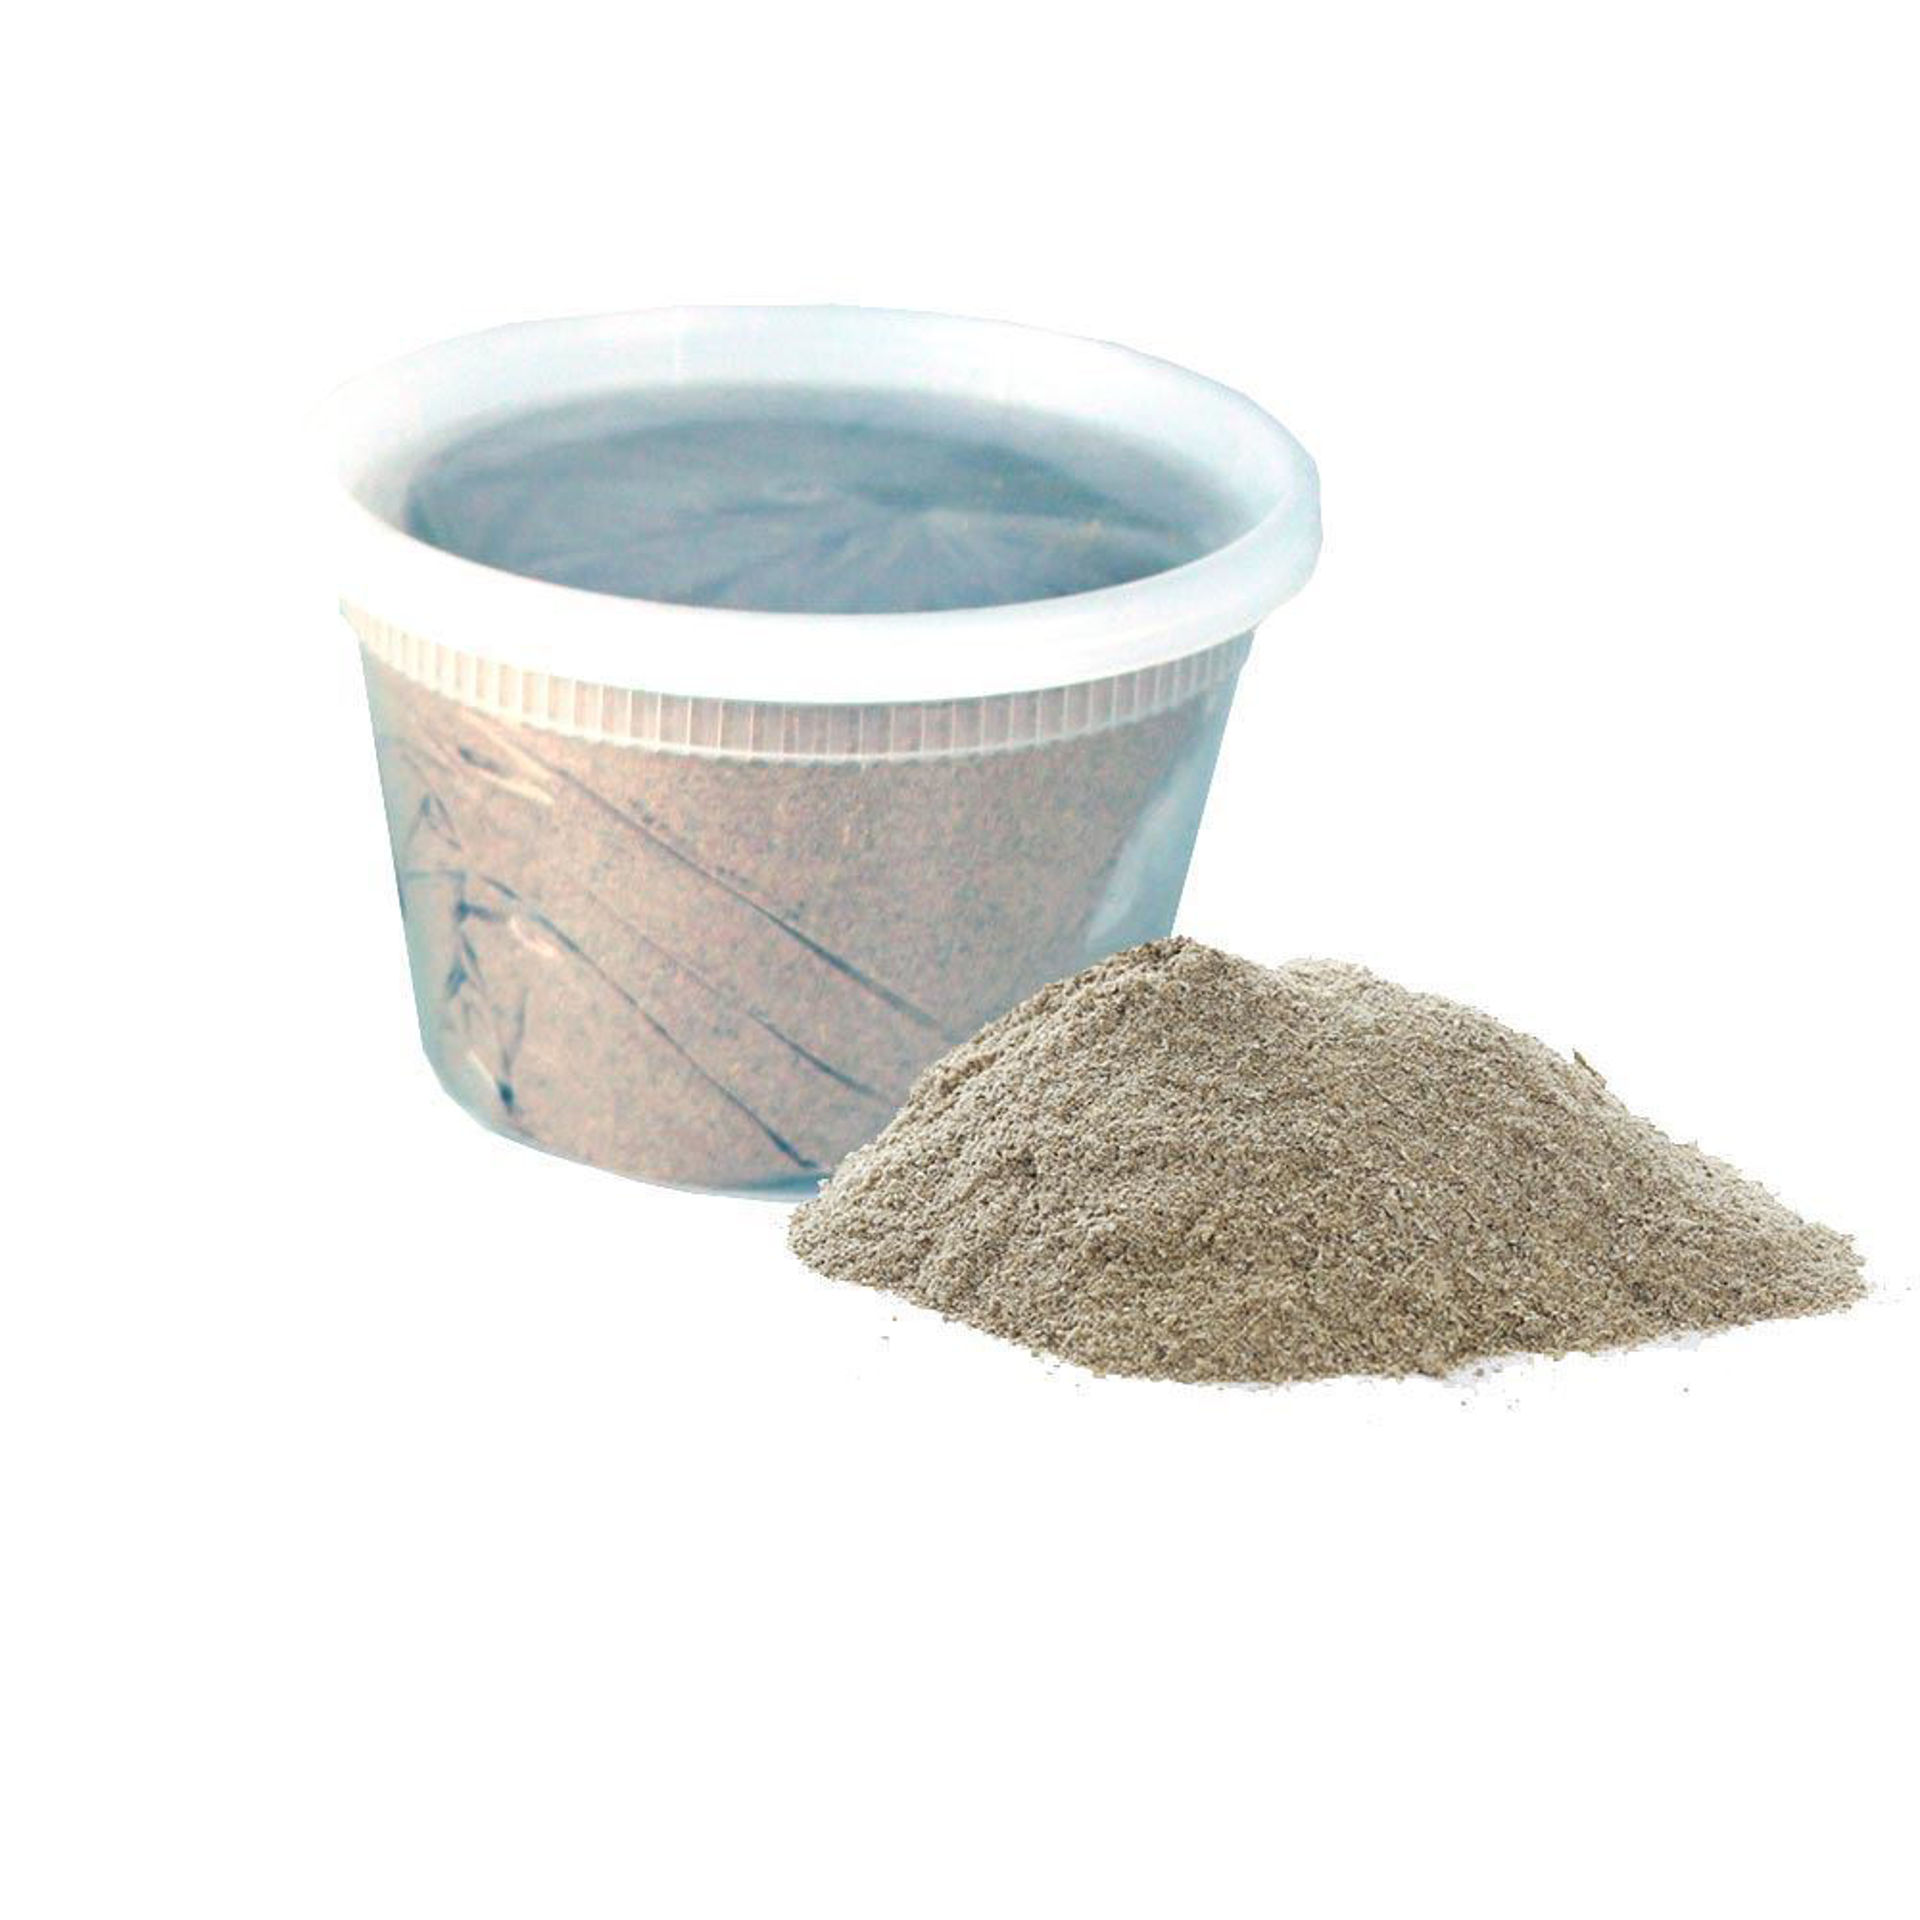 Picture of Chebe Powder - 8 oz. (226 Grams)